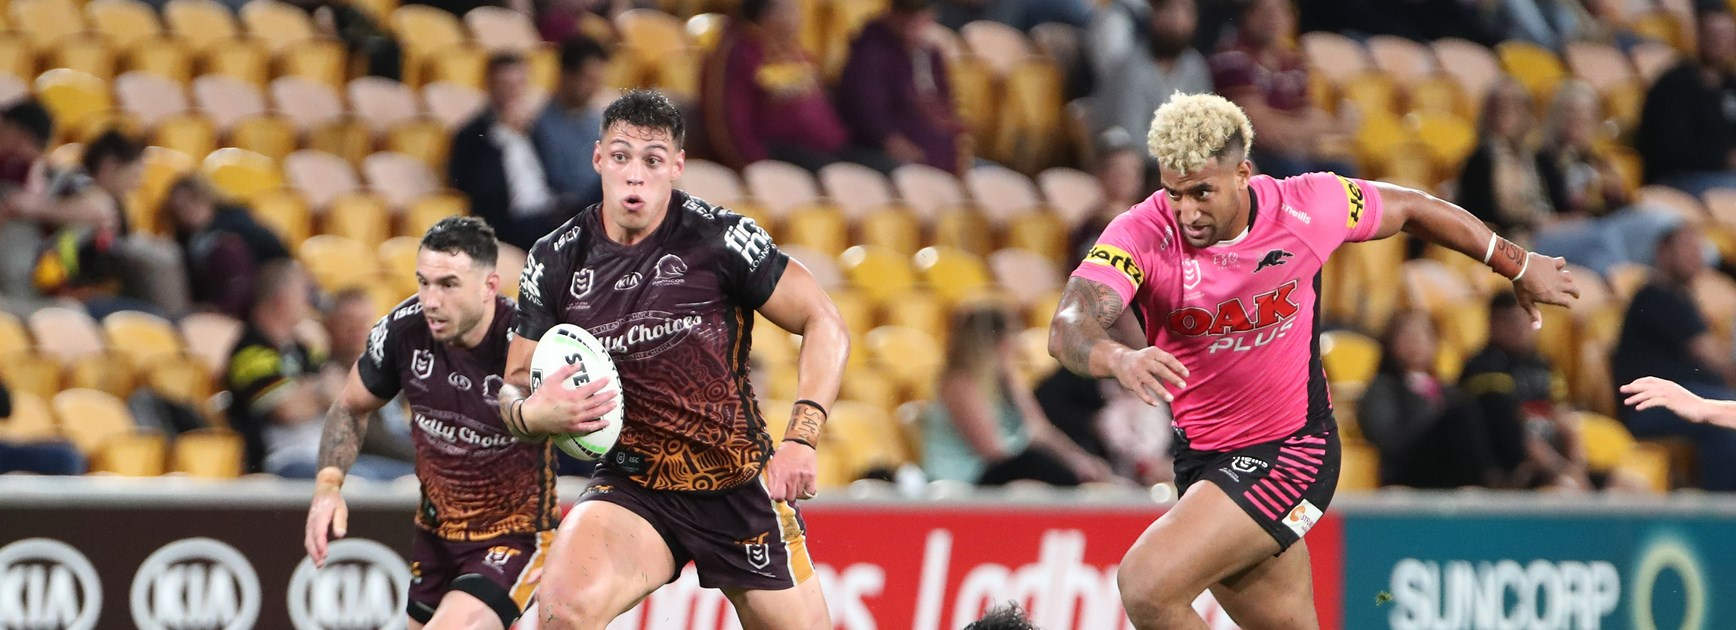 Riki can fill that No.11 jersey: Glenn backs rookie to replace Fifita